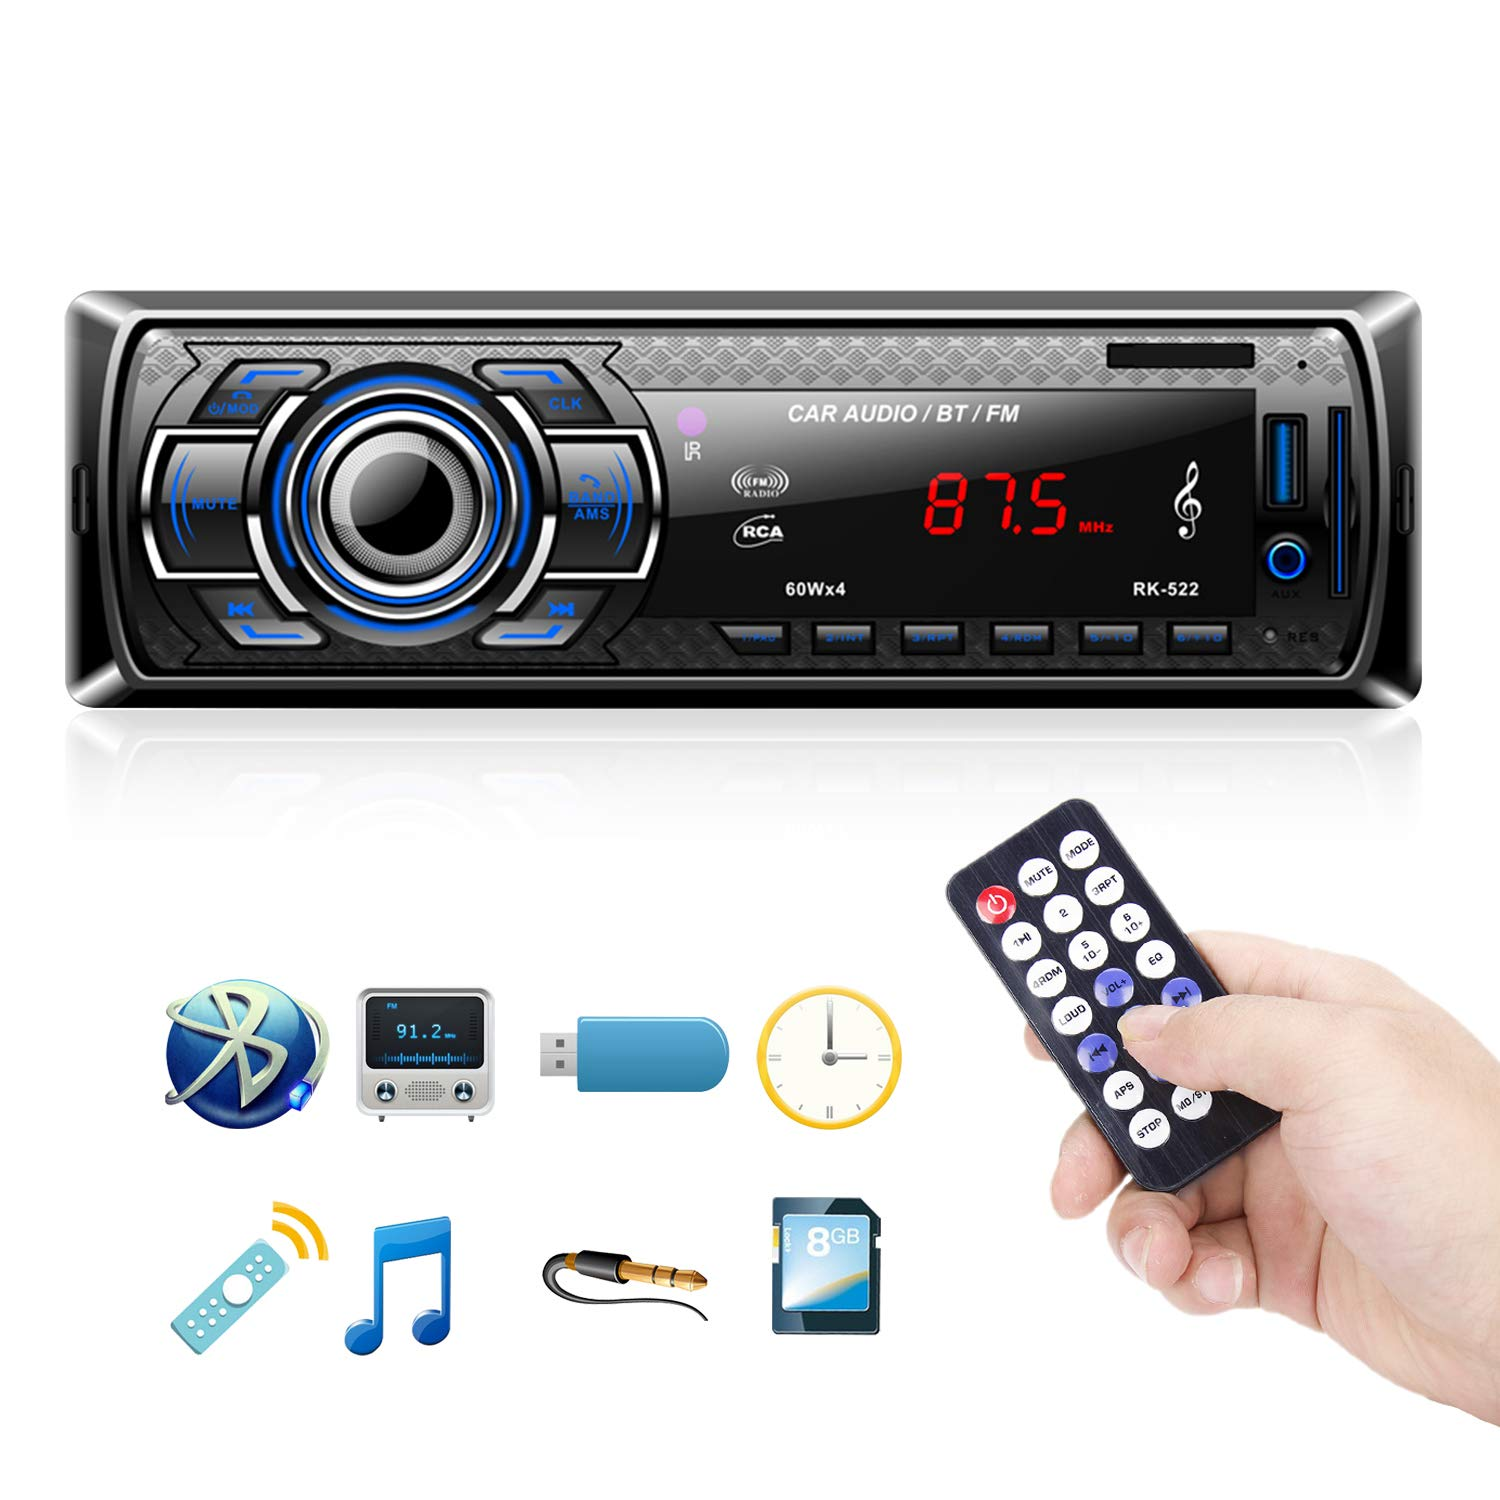 Autoradio Bluetooth, 1 Din Radio de Voiture Audio, Stereo FM Radio 4x60W Poste Radio Voiture Soutien Bluetooth/USB/SD/AUX/EQ / MP3 / TF + Télécommande product image